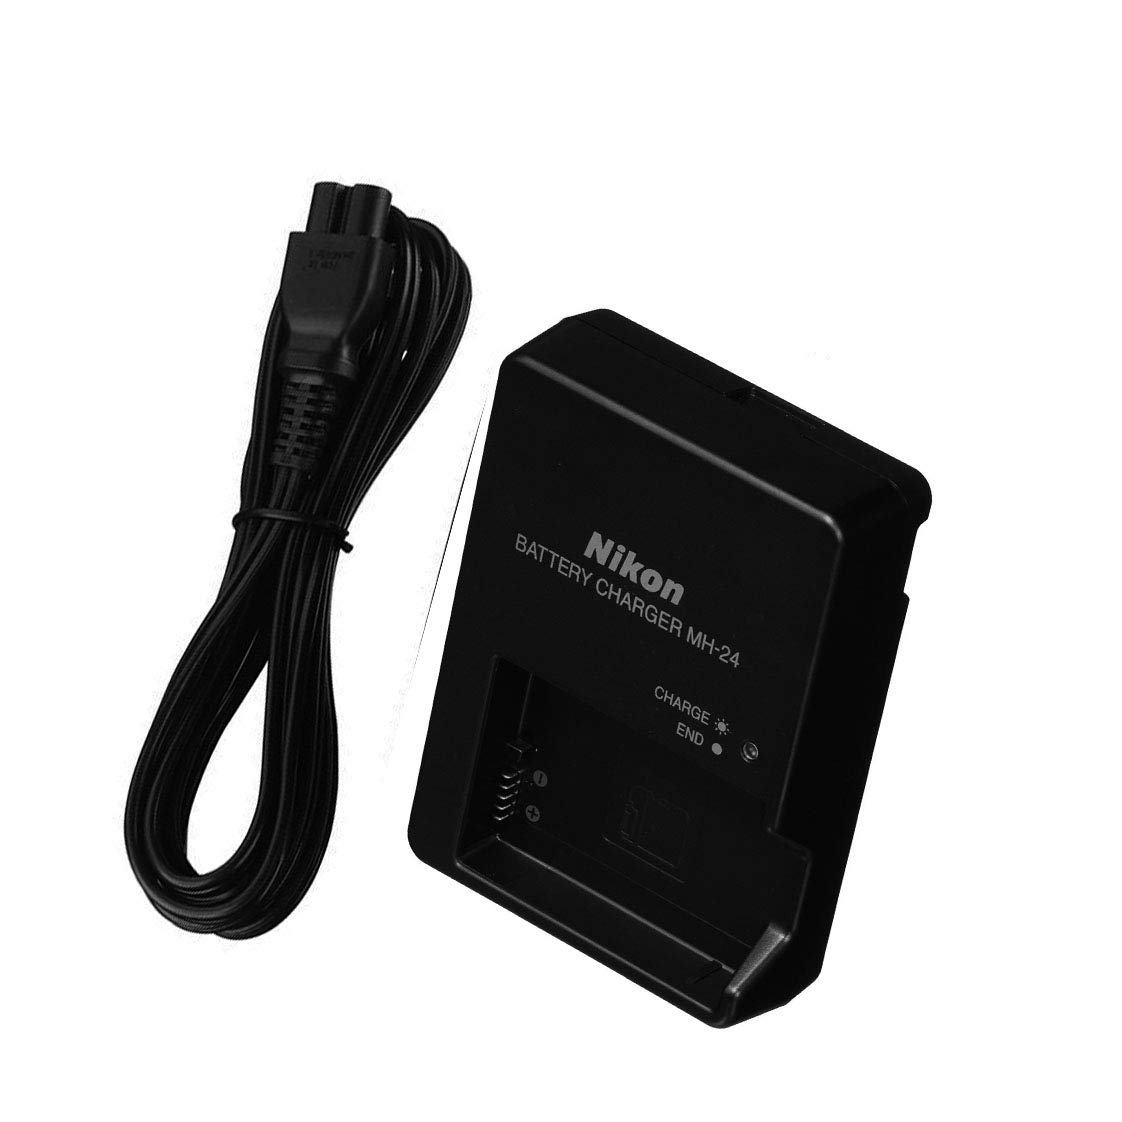 Hoetk MH24 MH-24 Charger Adapter for Nikon En-el14 En-el14a El14 Battery P7100 P7000 D5100 D5200 D5300 D5500 D5600 Df D3100 D3200 D3300 DSLR Digital Camera: Beauty